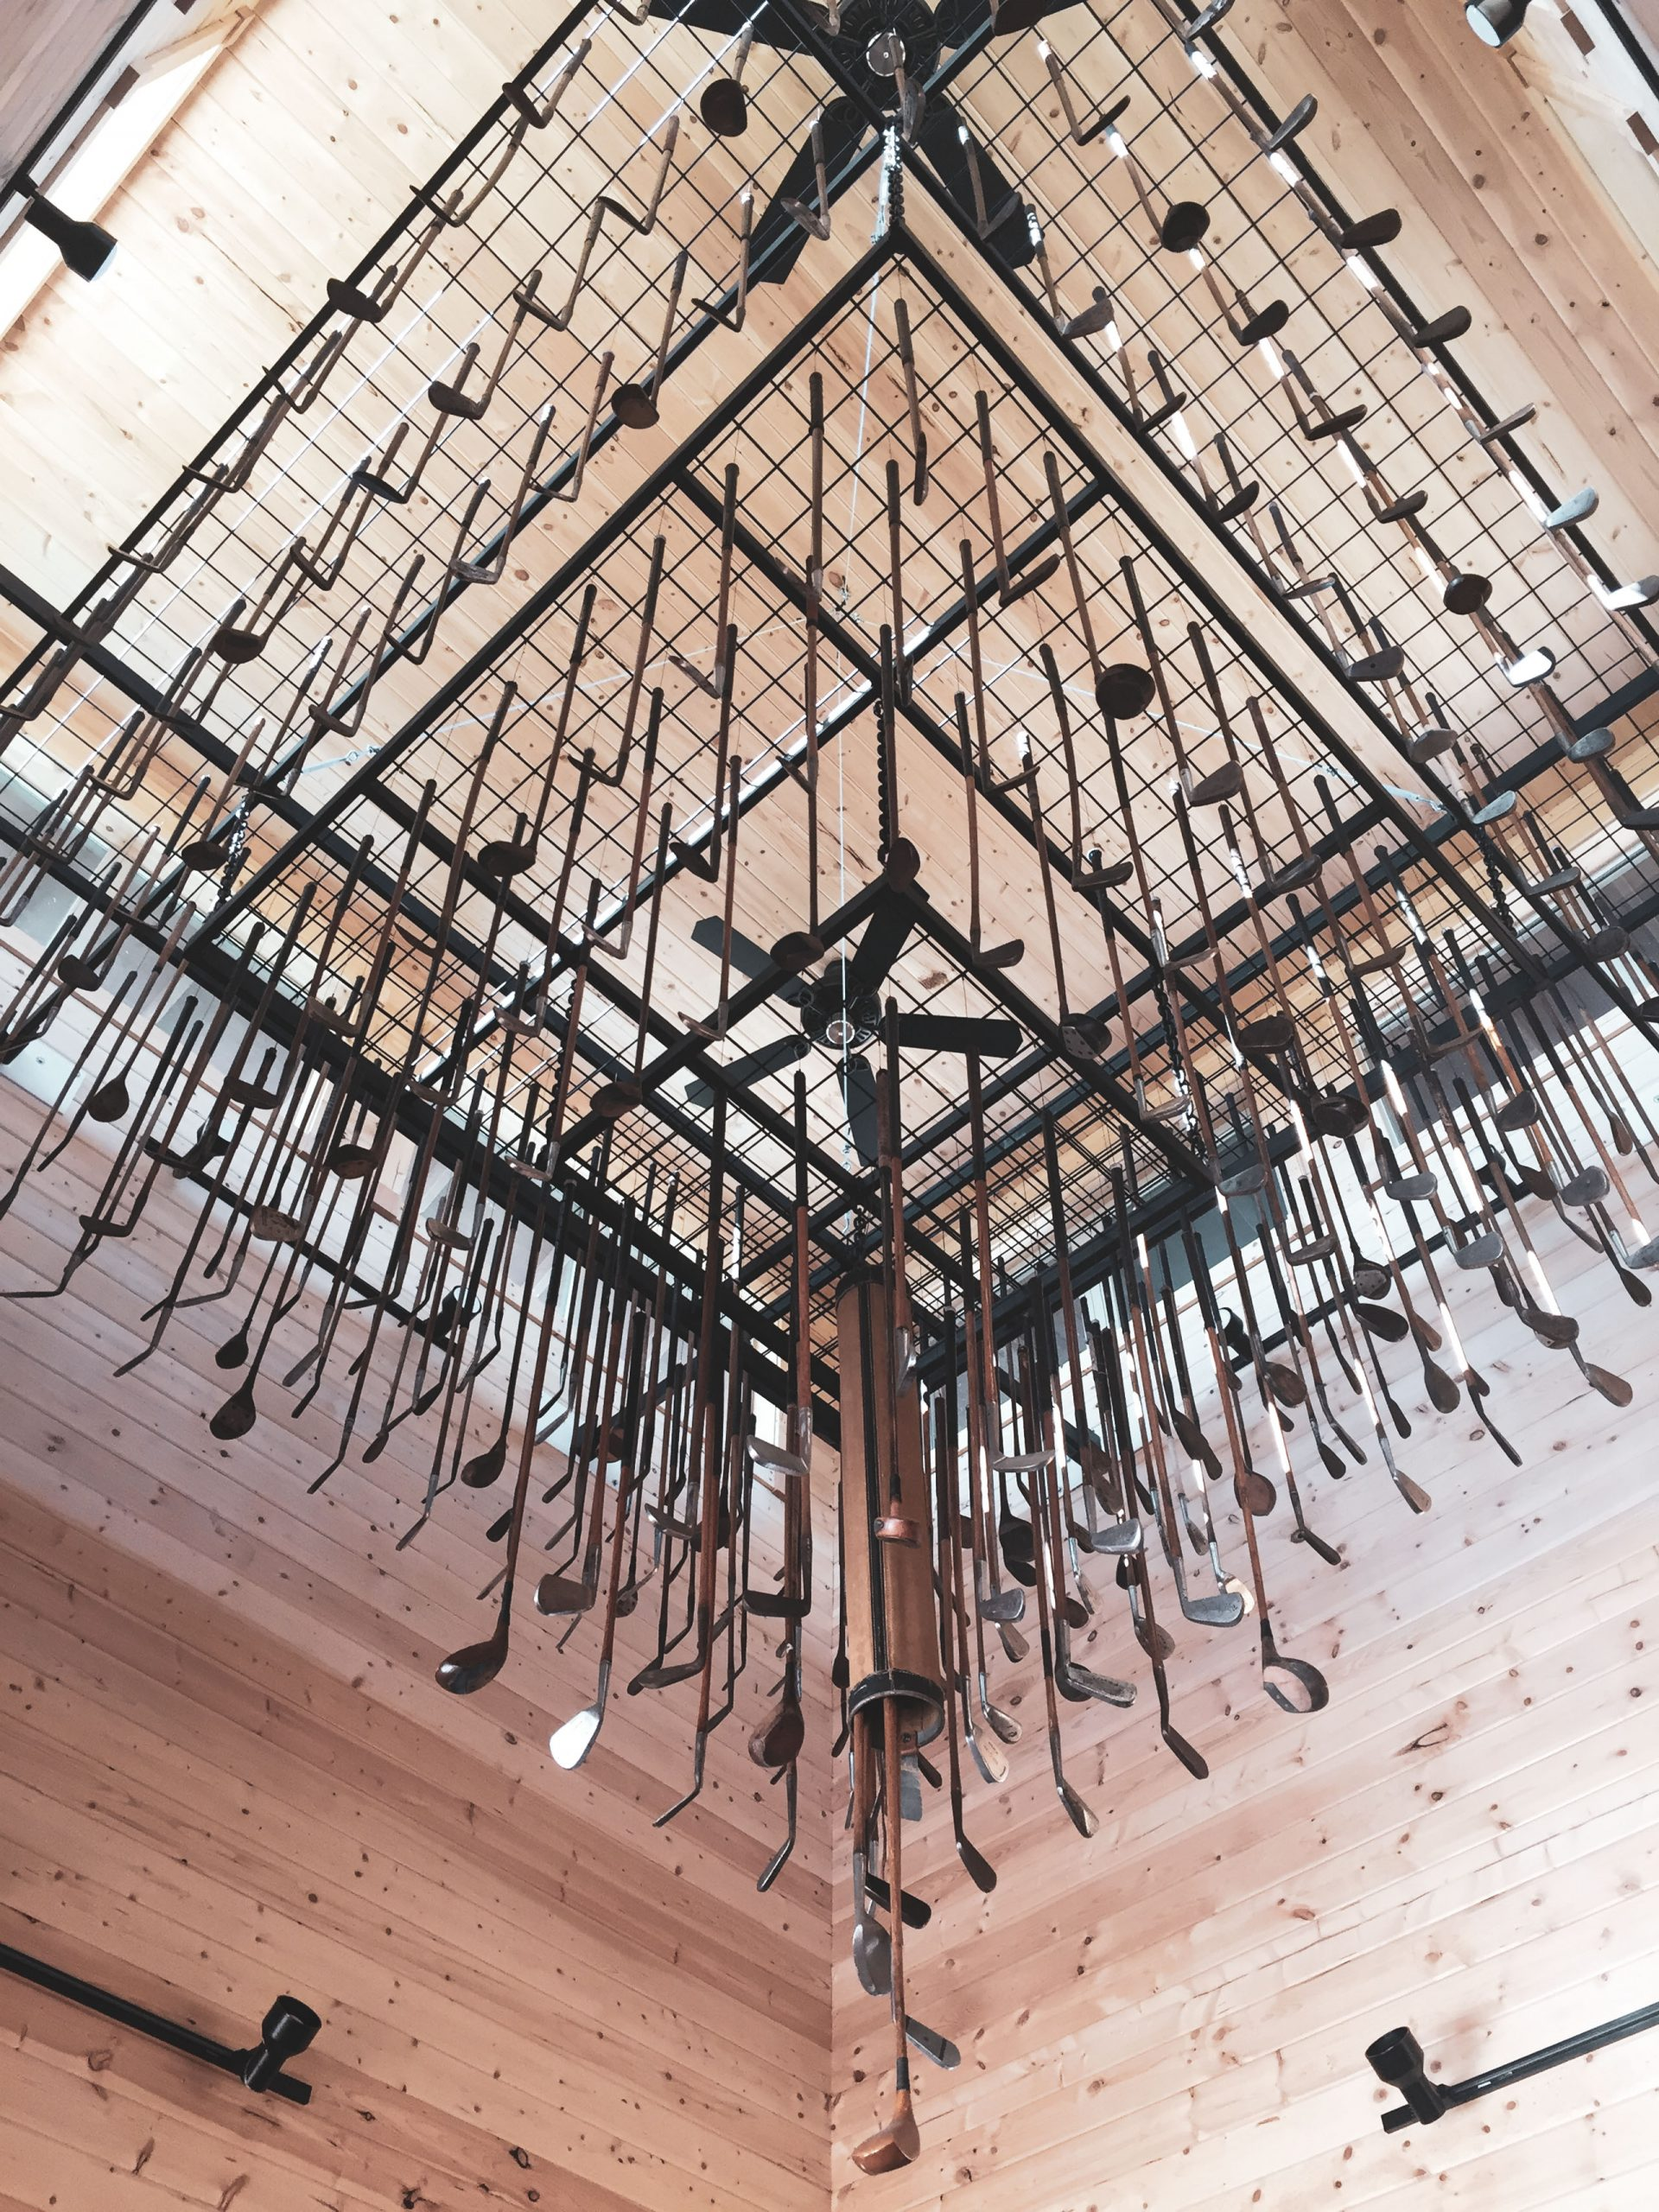 Sometimes the best thing to do at Silvies is simply enjoy the company of others, under the ranch cabin's one-of-a-kind chandelier.